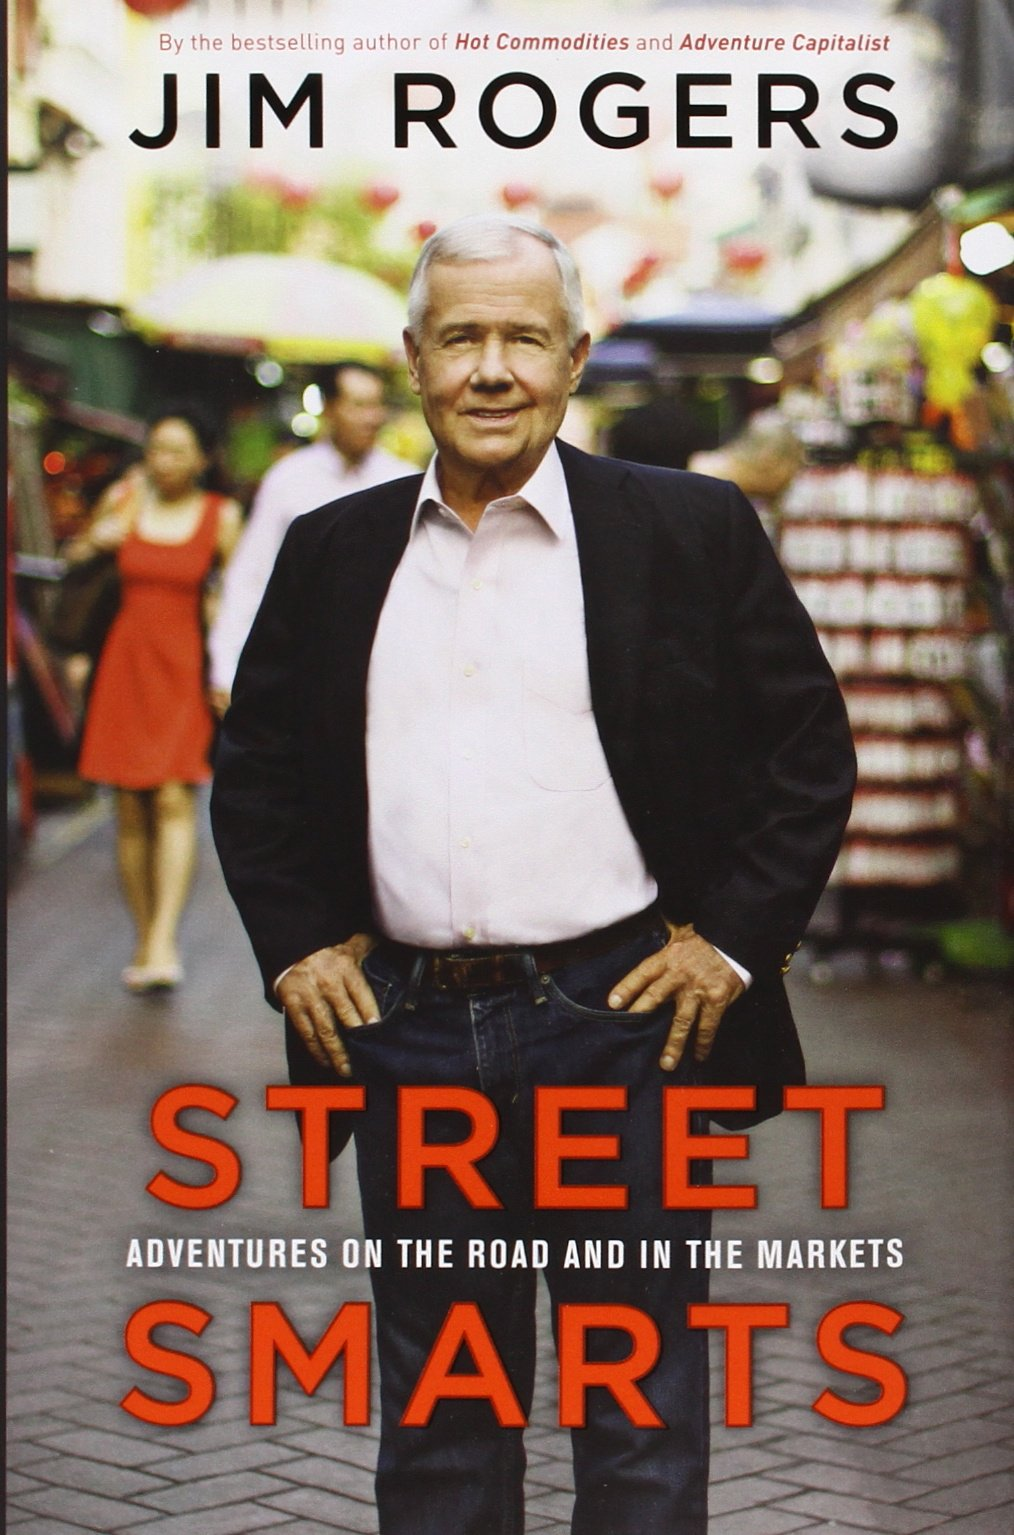 Street Smarts Adventures Road Markets product image